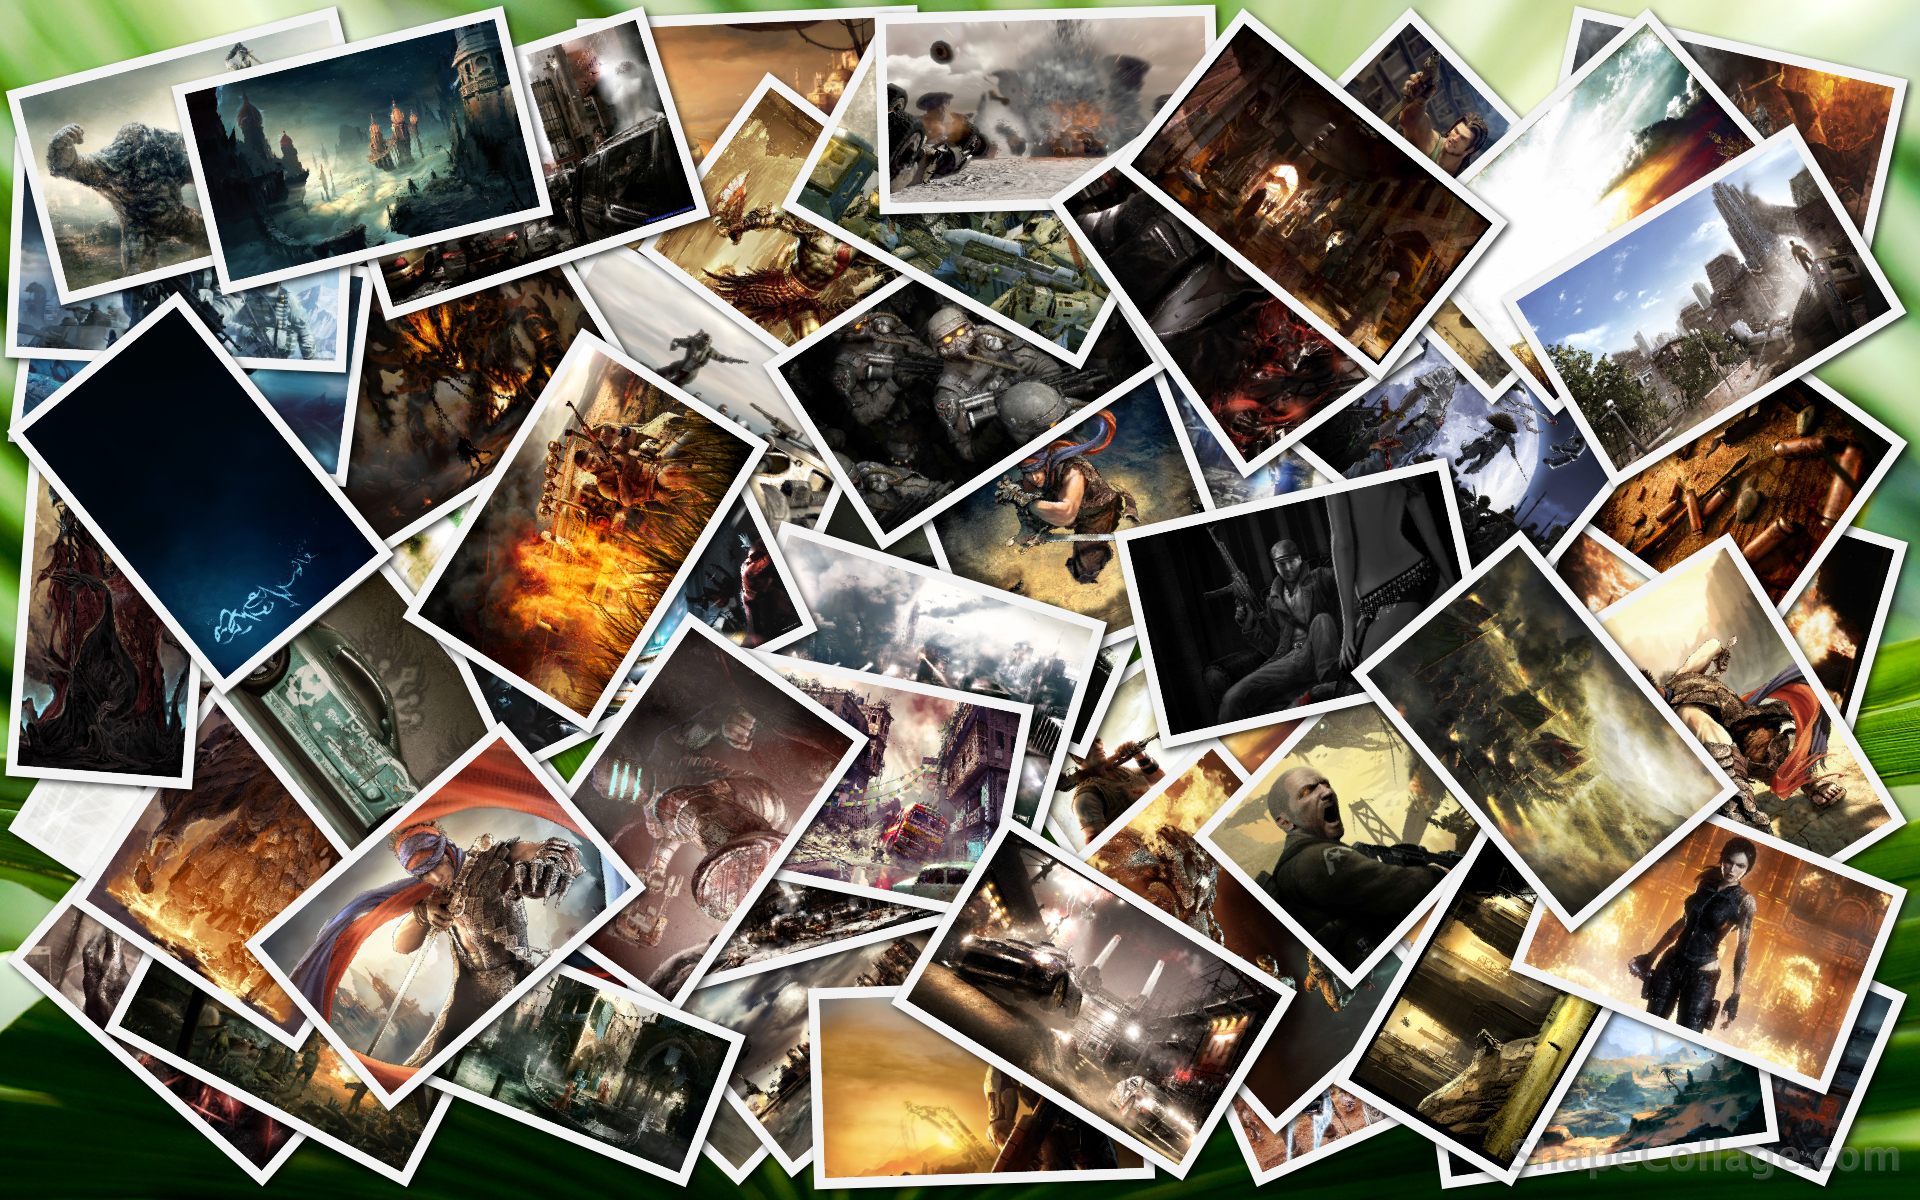 wallpaper-collage-game-flostyler-art-resolution-94758